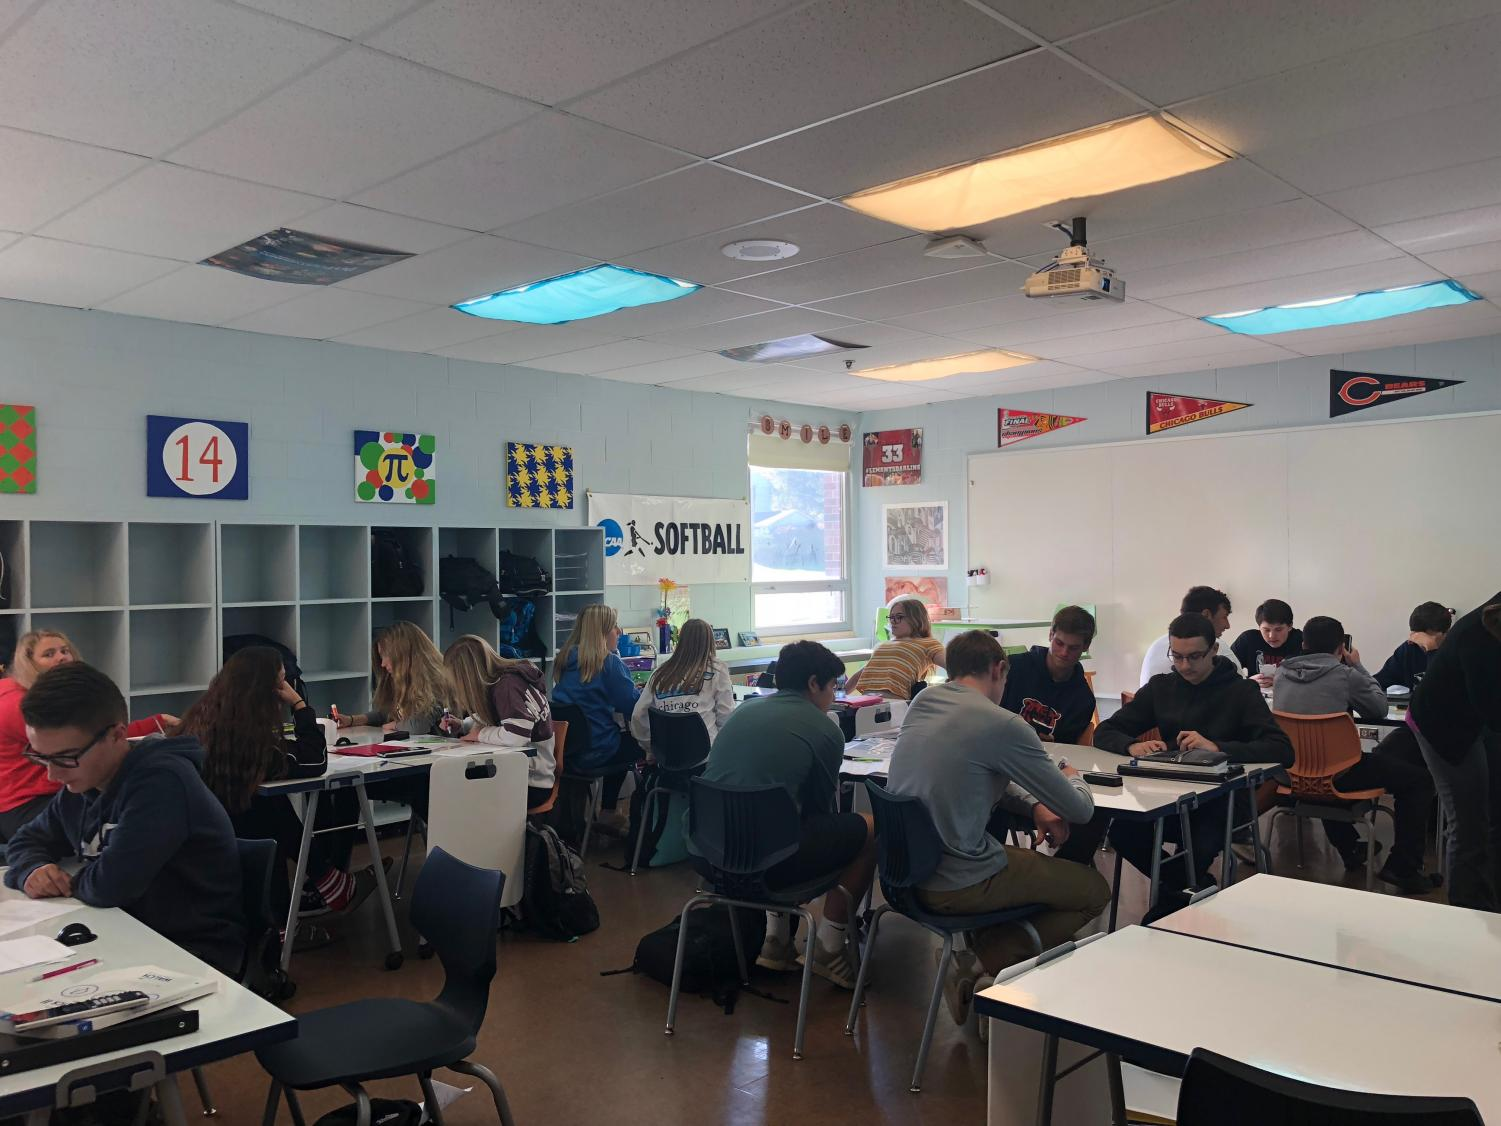 Students in Mrs. Johnson's math class are utilizing the whiteboard desks to practice problems. The whiteboard desks are currently aiding them to learn how to graph quadratic functions using a table of values and an axis of symmetry.